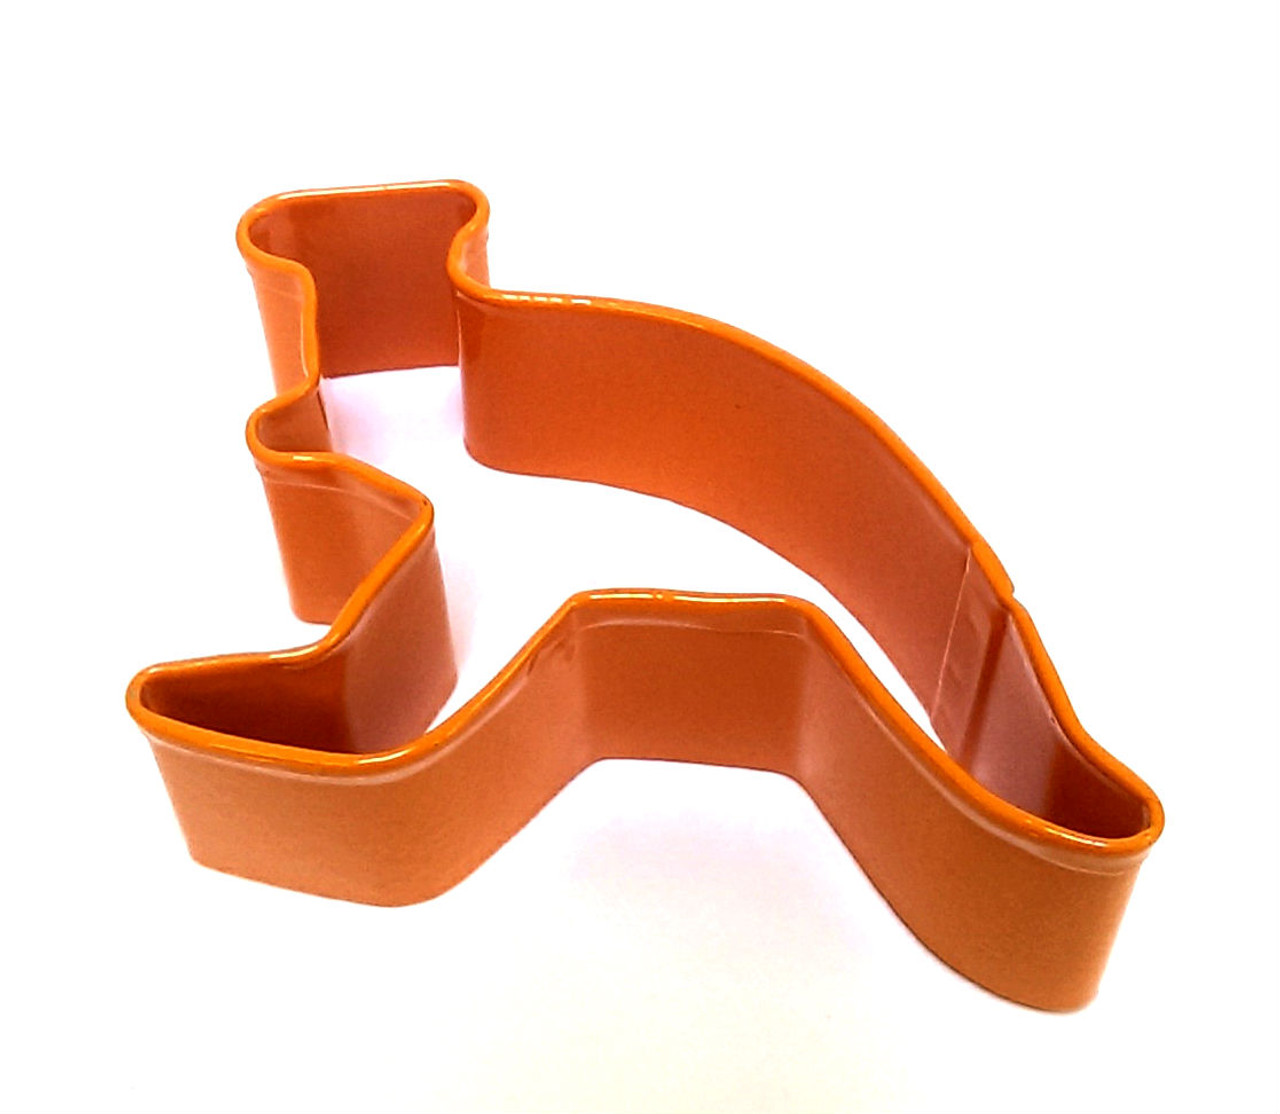 b71e2d83bfda Kangaroo Cookie Cutter Orange (7.62 cm)